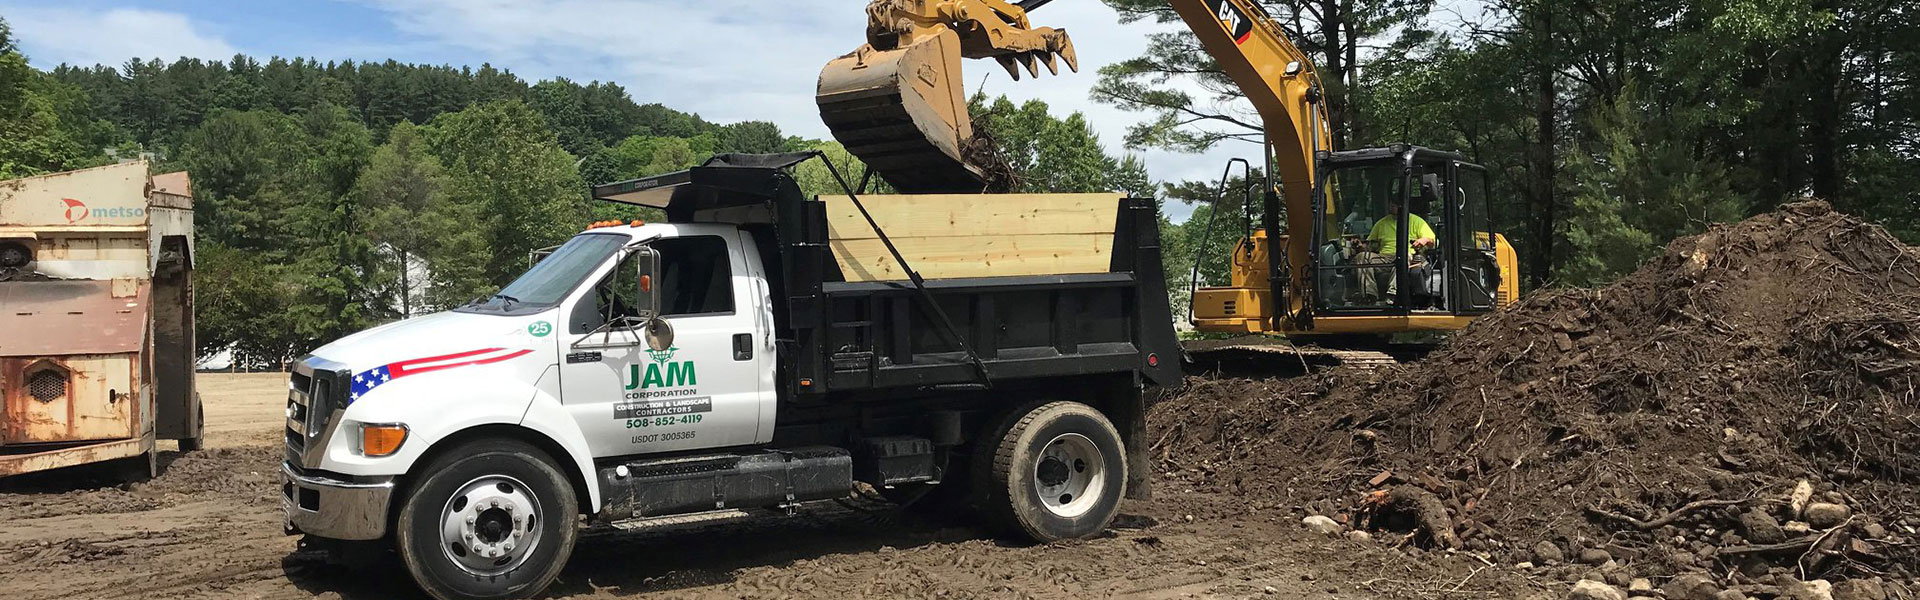 JAM Corporation excavator tractor dumping dirt into the back of a truck on a work site